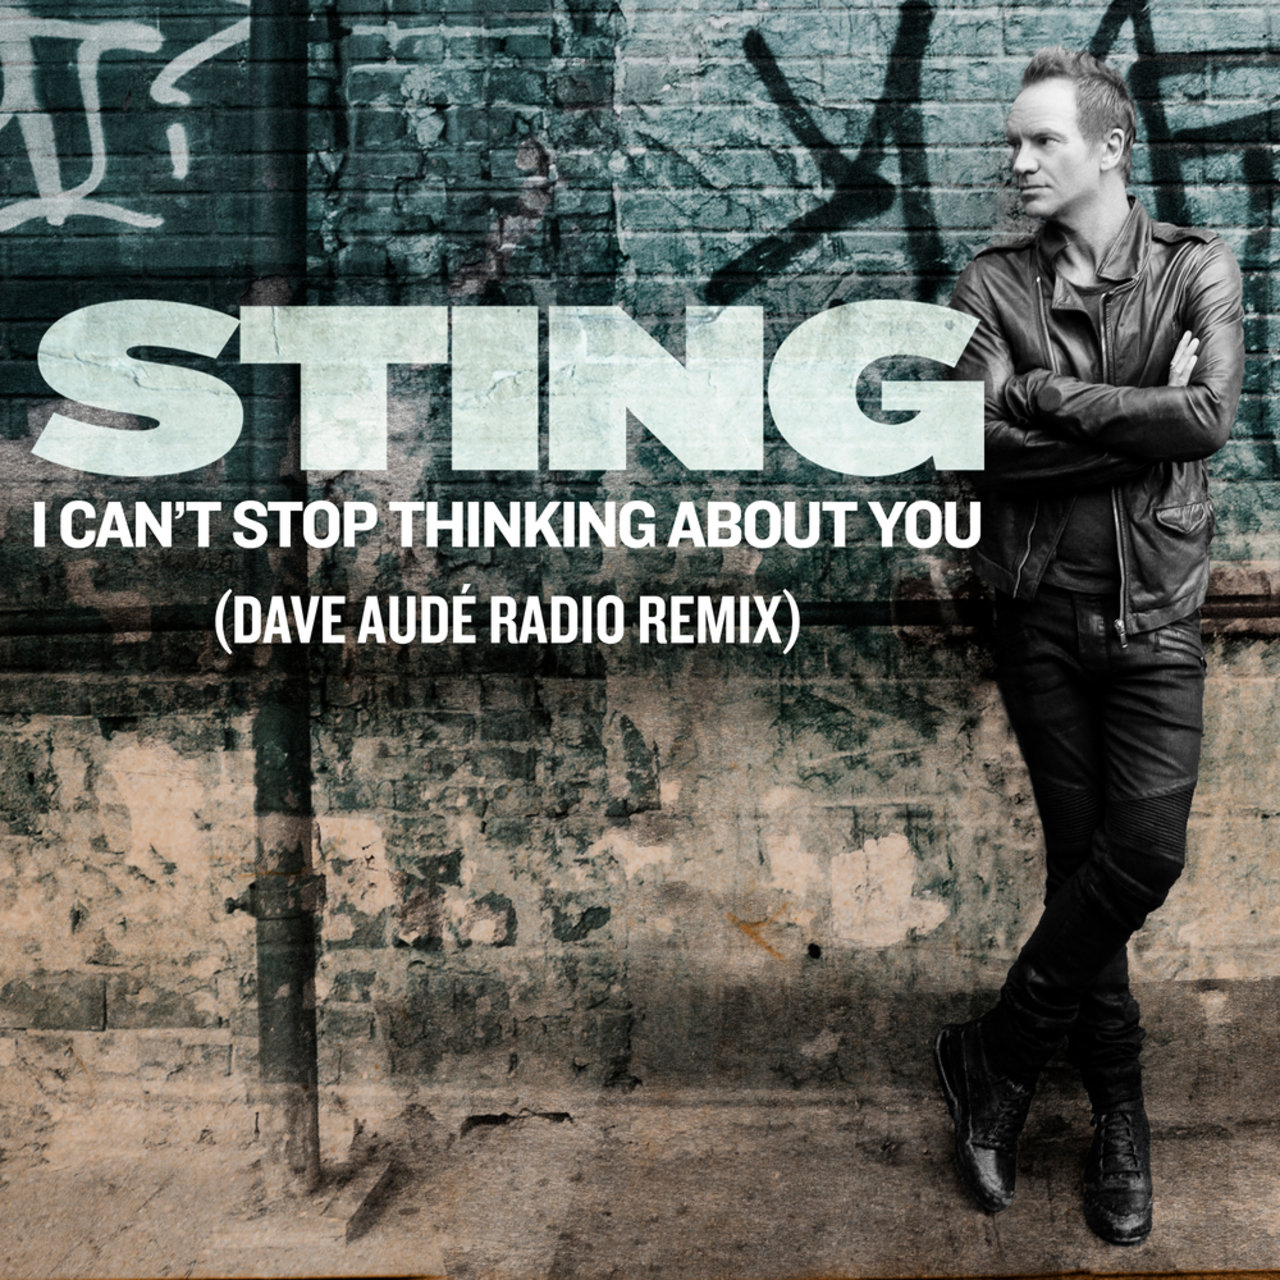 I Can't Stop Thinking About You (Dave Audé Radio Remix)